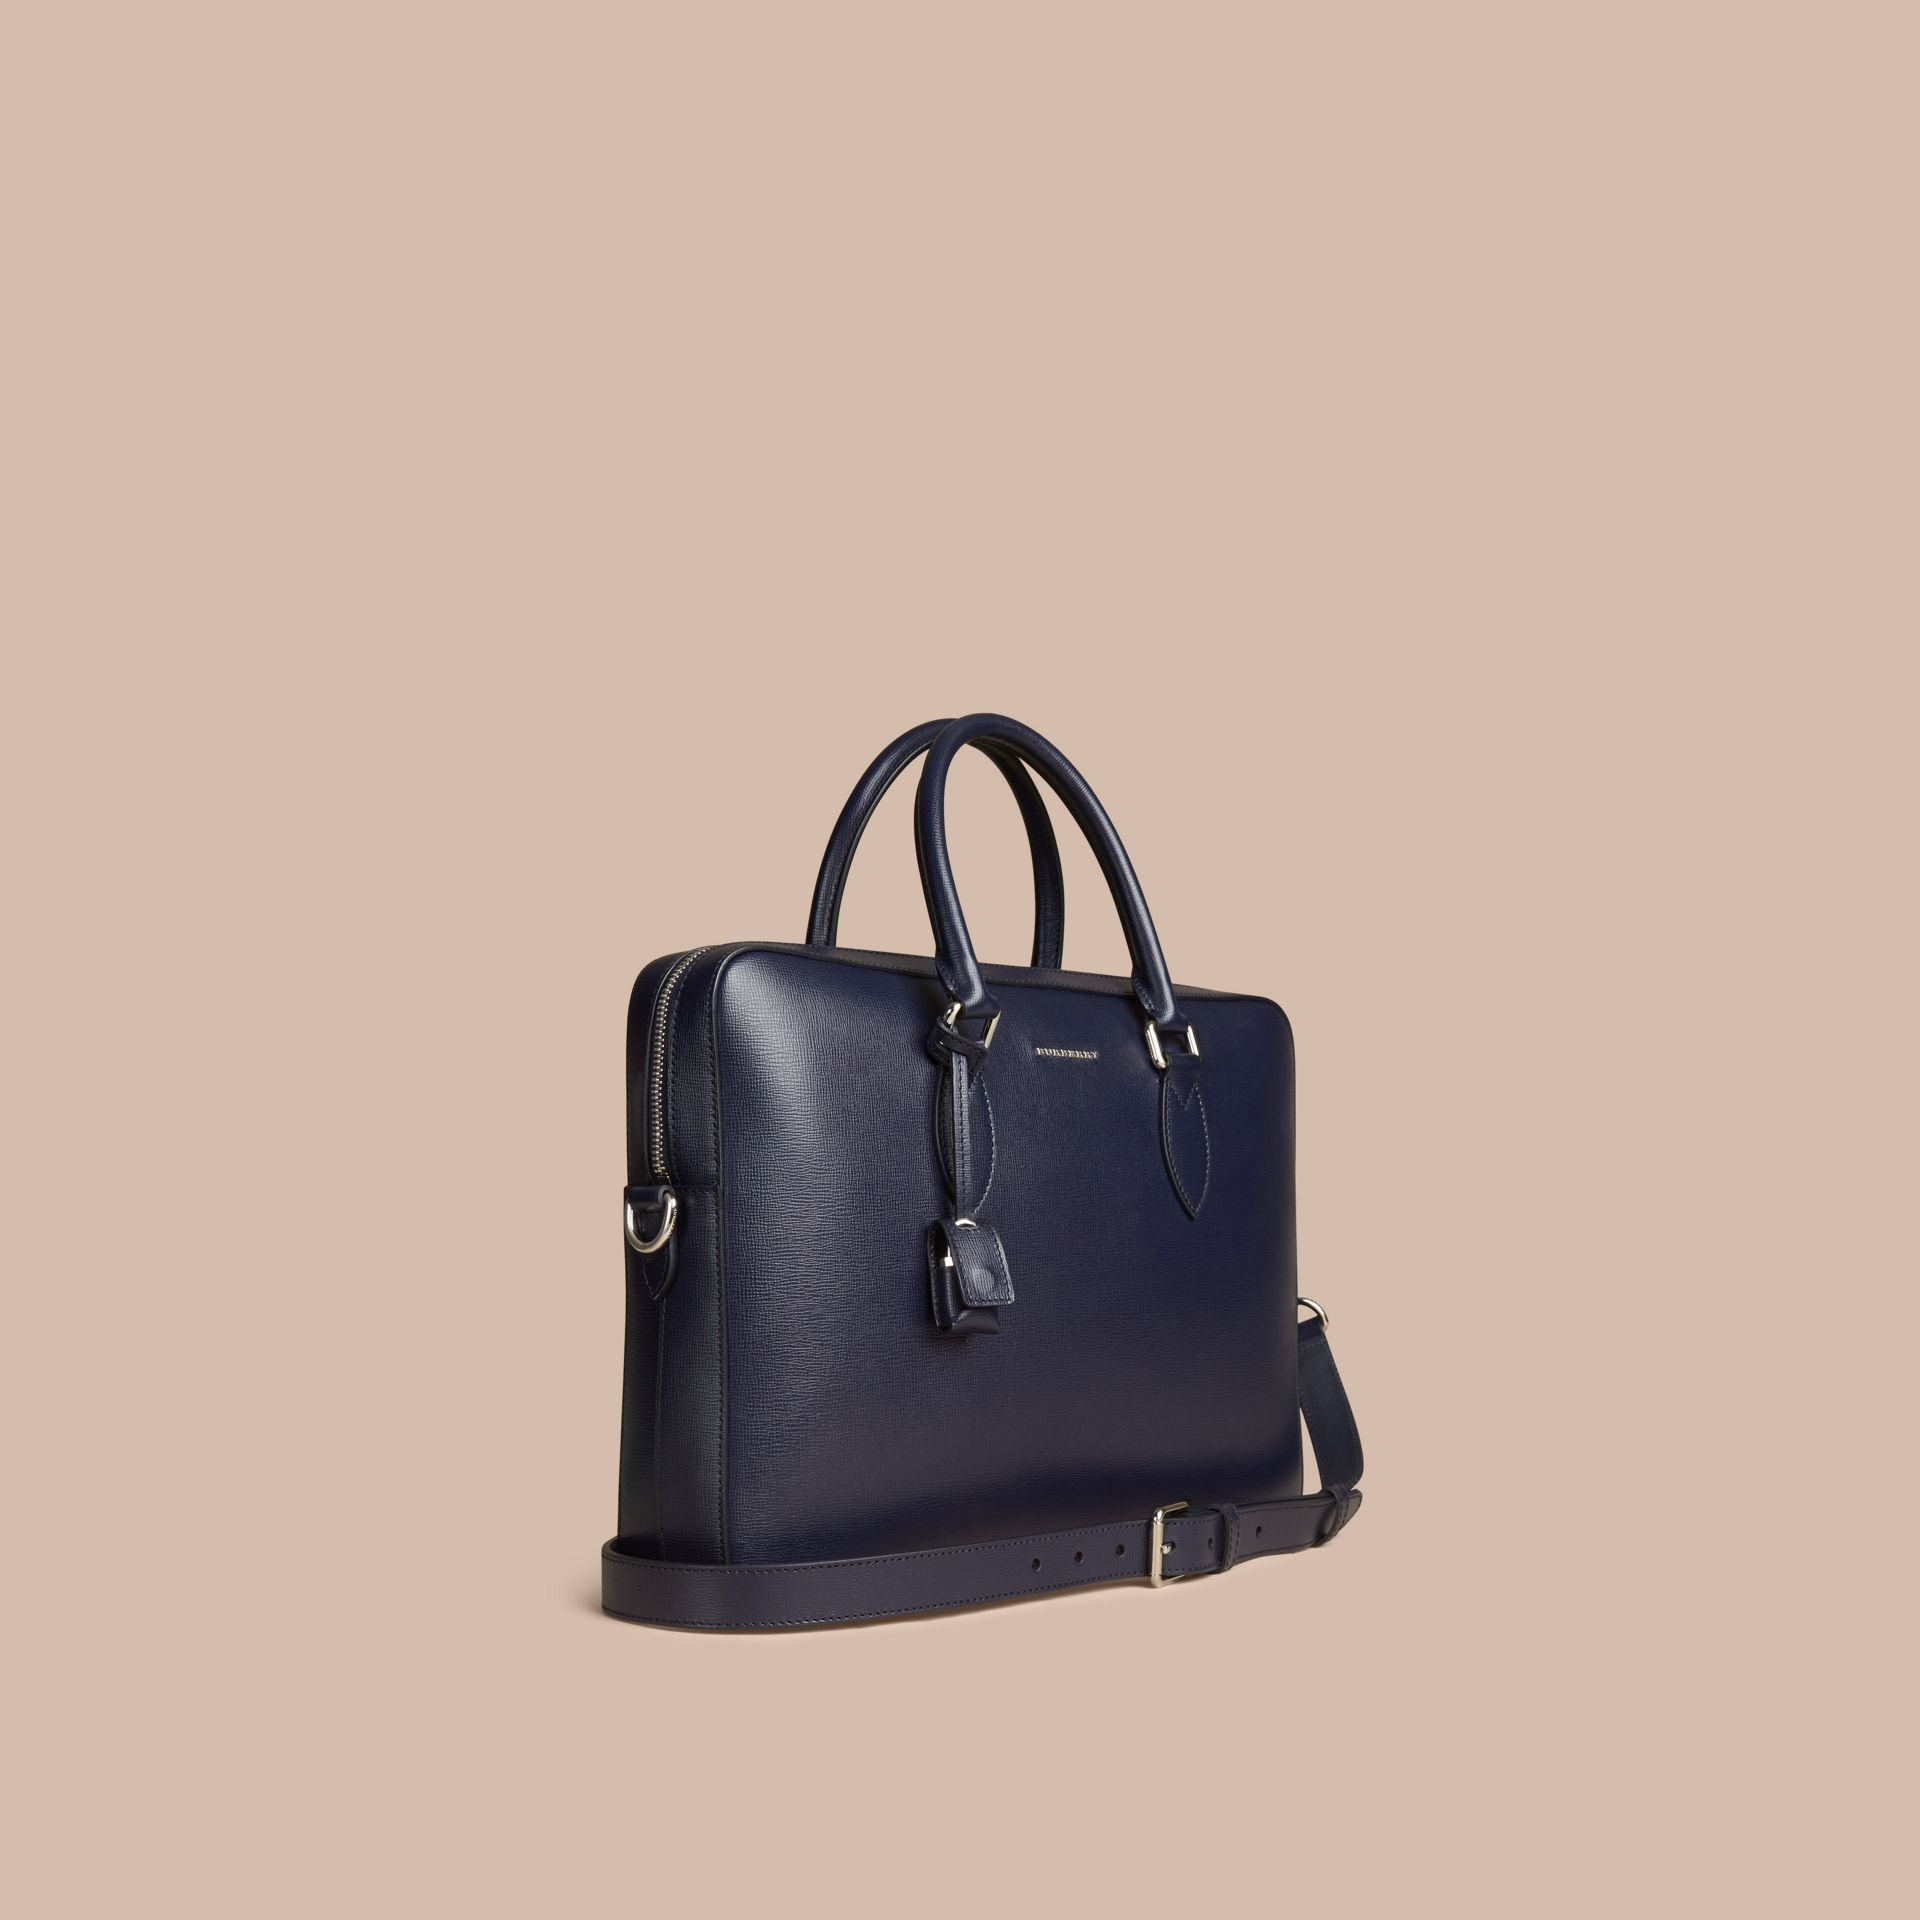 Medium London Leather Briefcase Dark Navy - gallery image 1